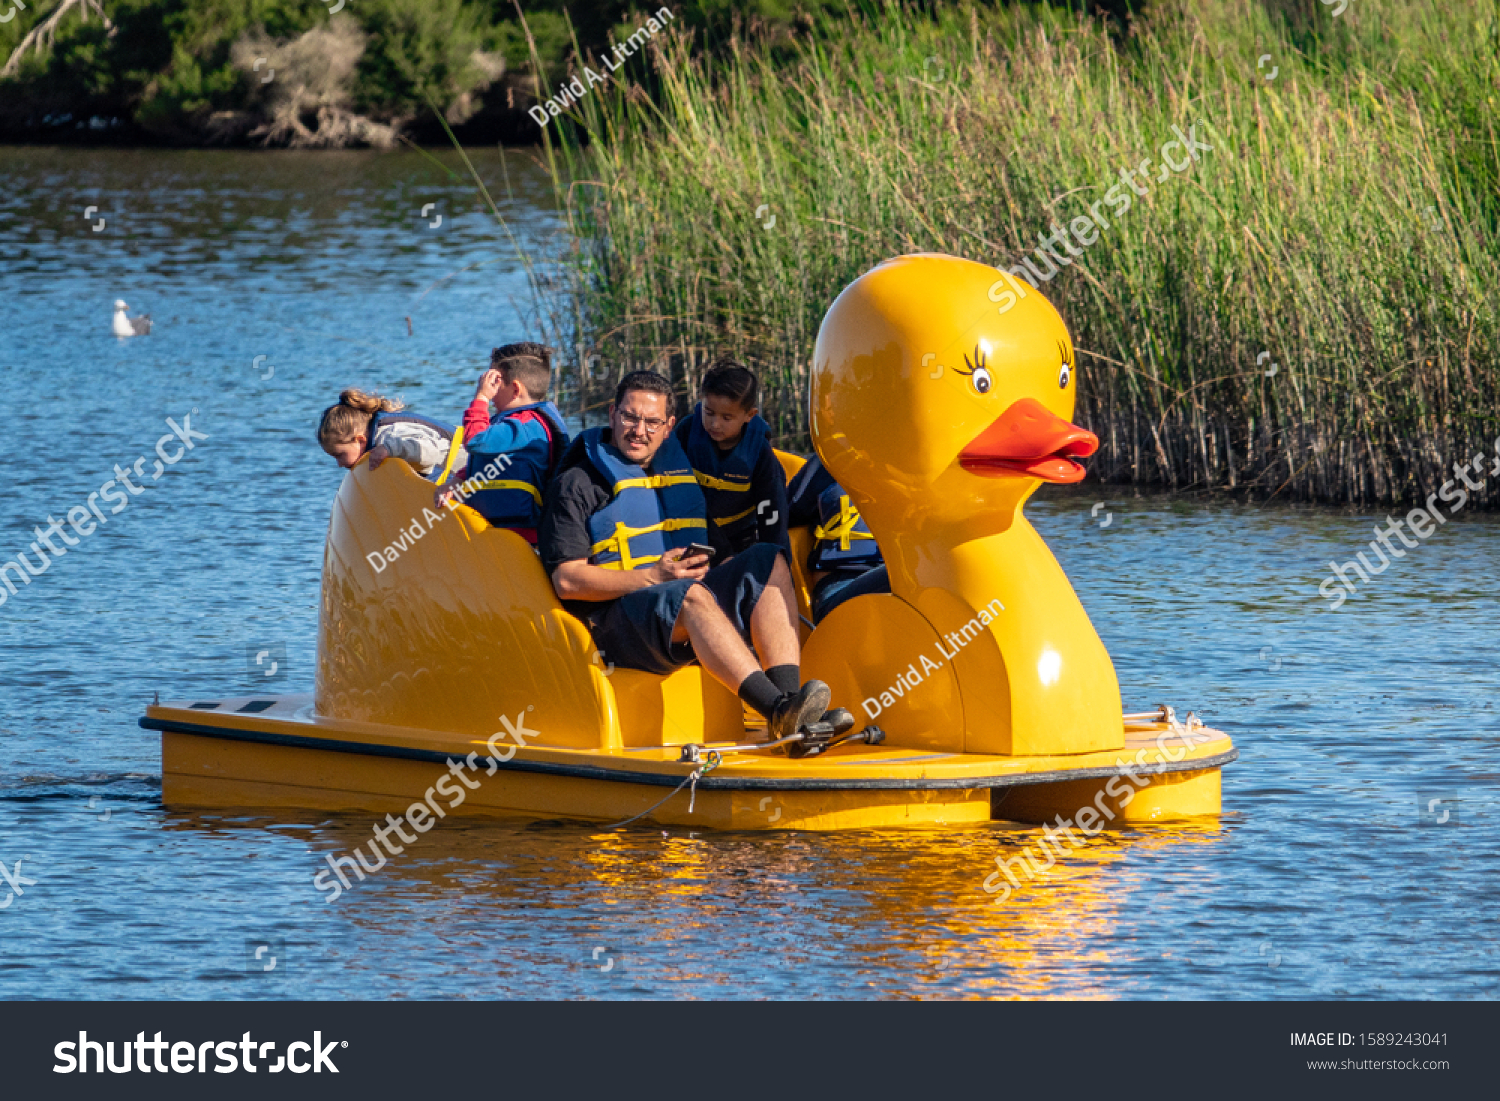 Monterey, California - December 14, 2019: A family enjoys the day on a yellow duck paddleboat on El Estero Lake, in Monterey, along the central coast of California.